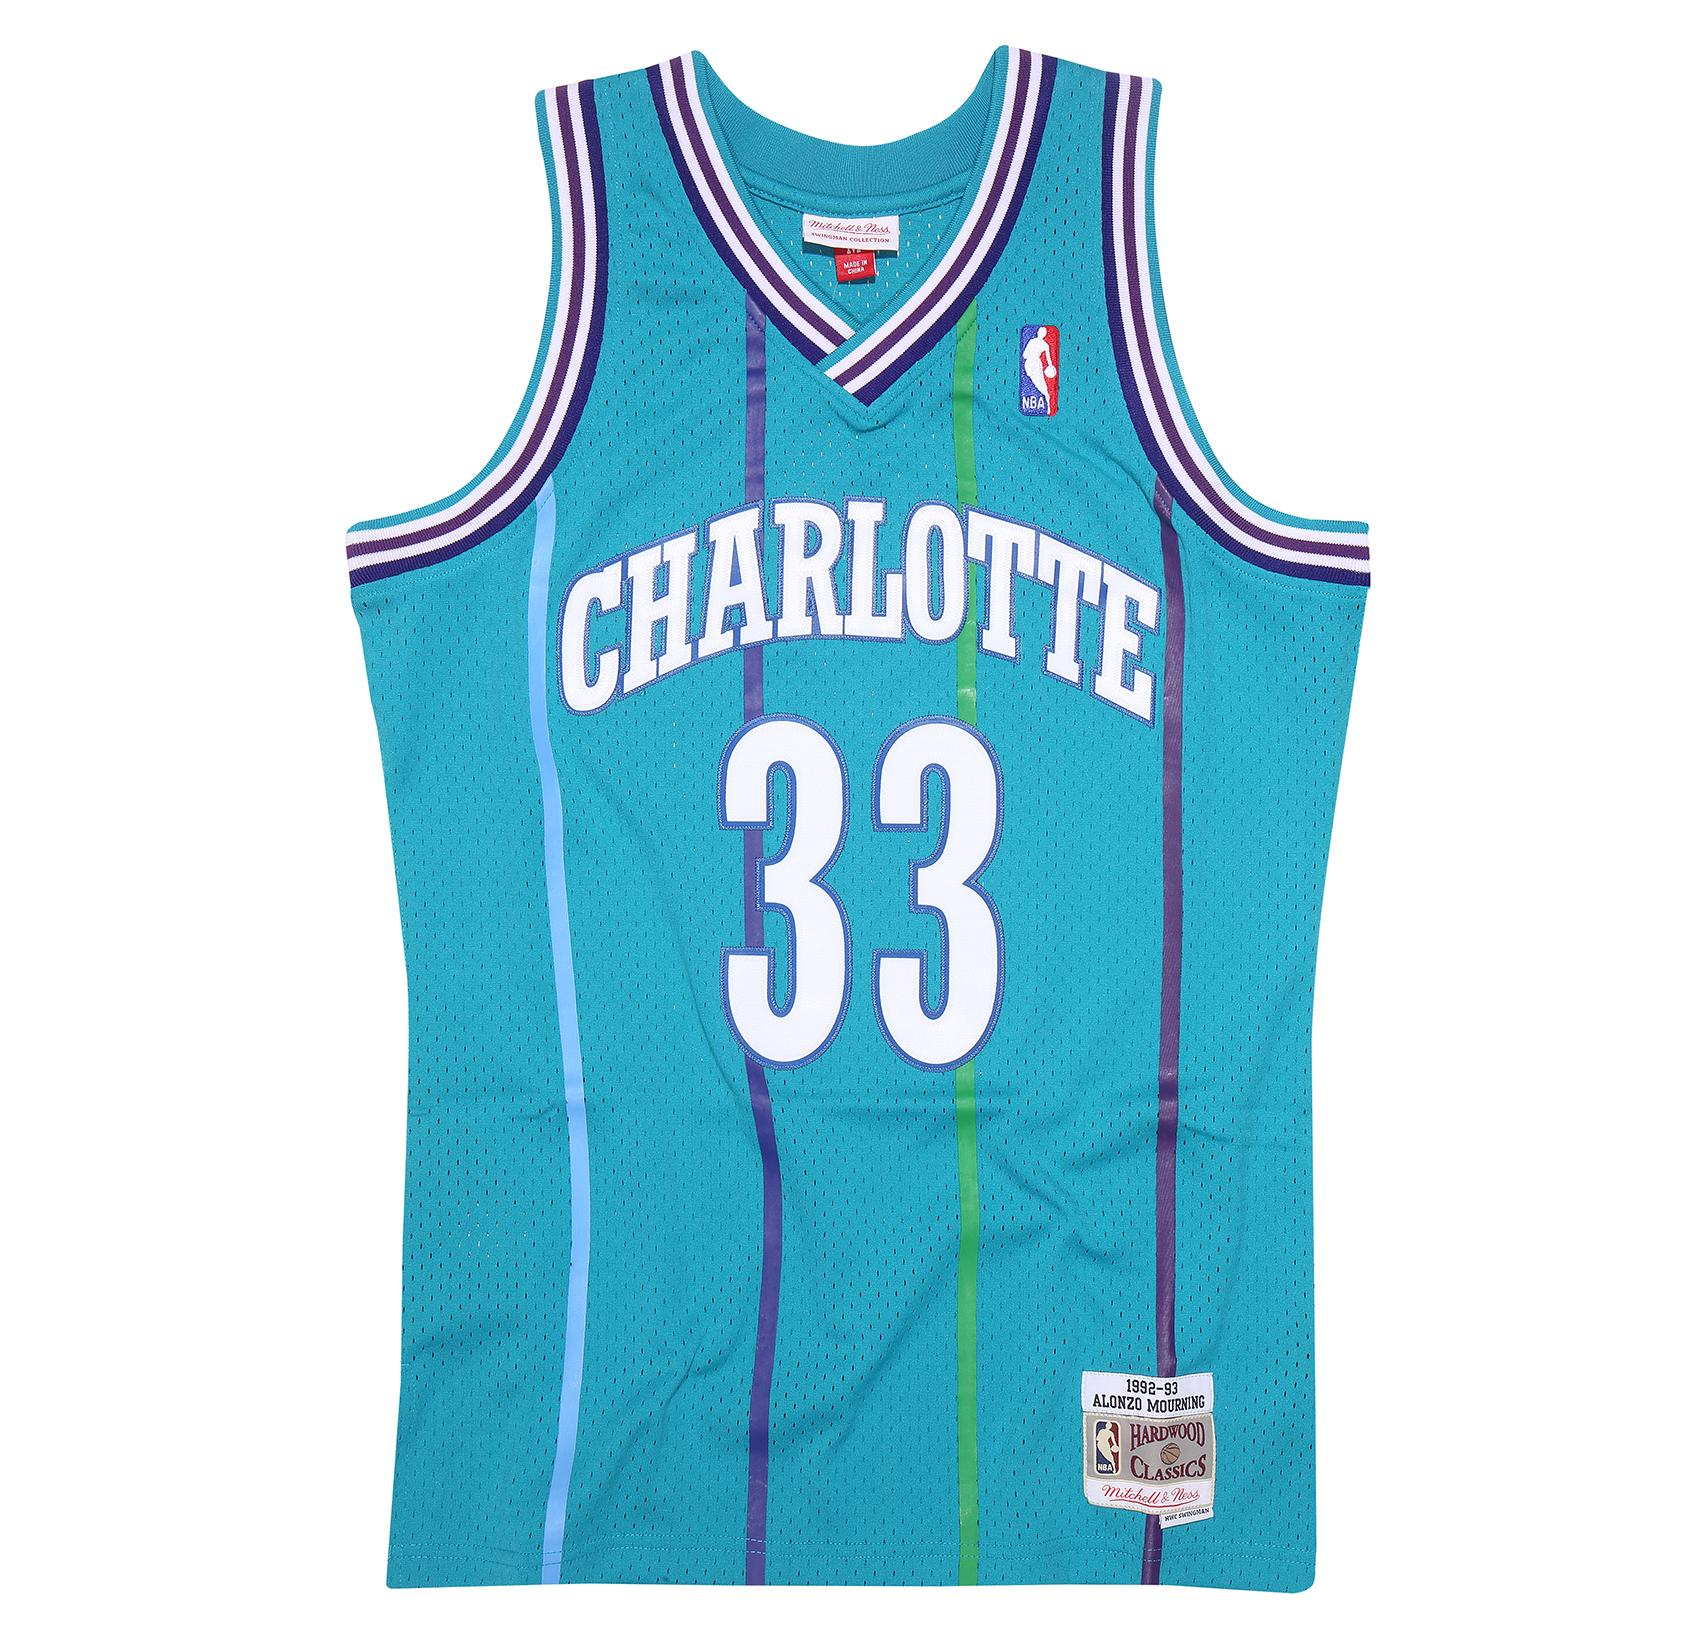 654060b4b87 ... Mourning Road 1992-93 Swingman Jersey Our Price  £90.00 Clyde Drexler  1996 ...